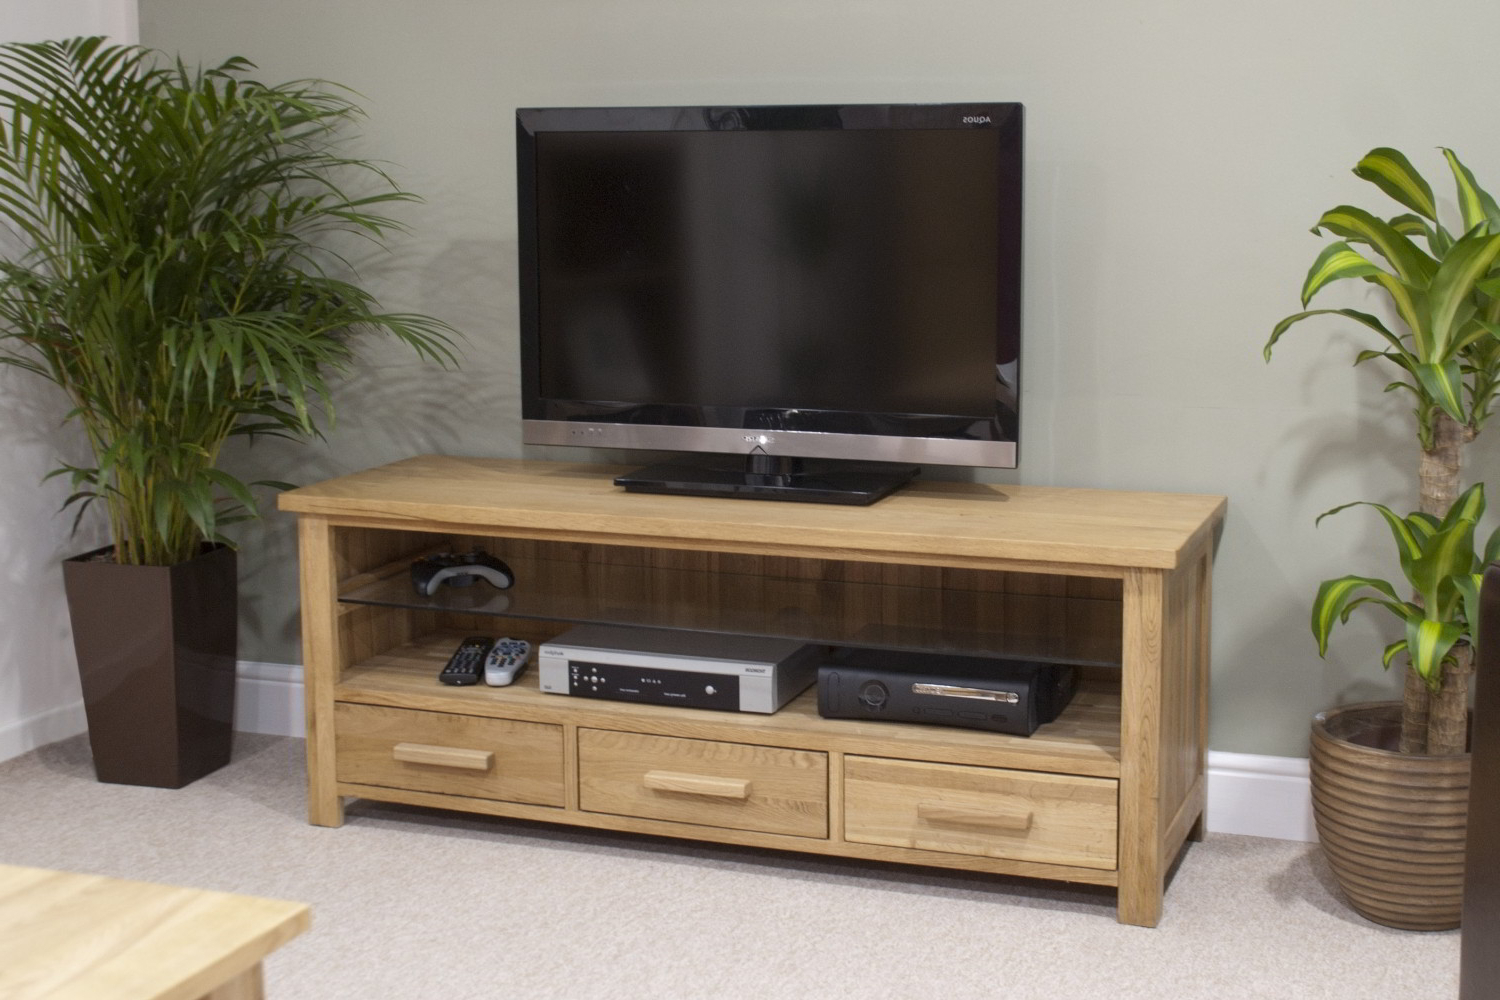 Eton Solid Oak Living Room Furniture Widescreen Tv Cabinet Stand In Most Current Oak Widescreen Tv Units (View 4 of 20)